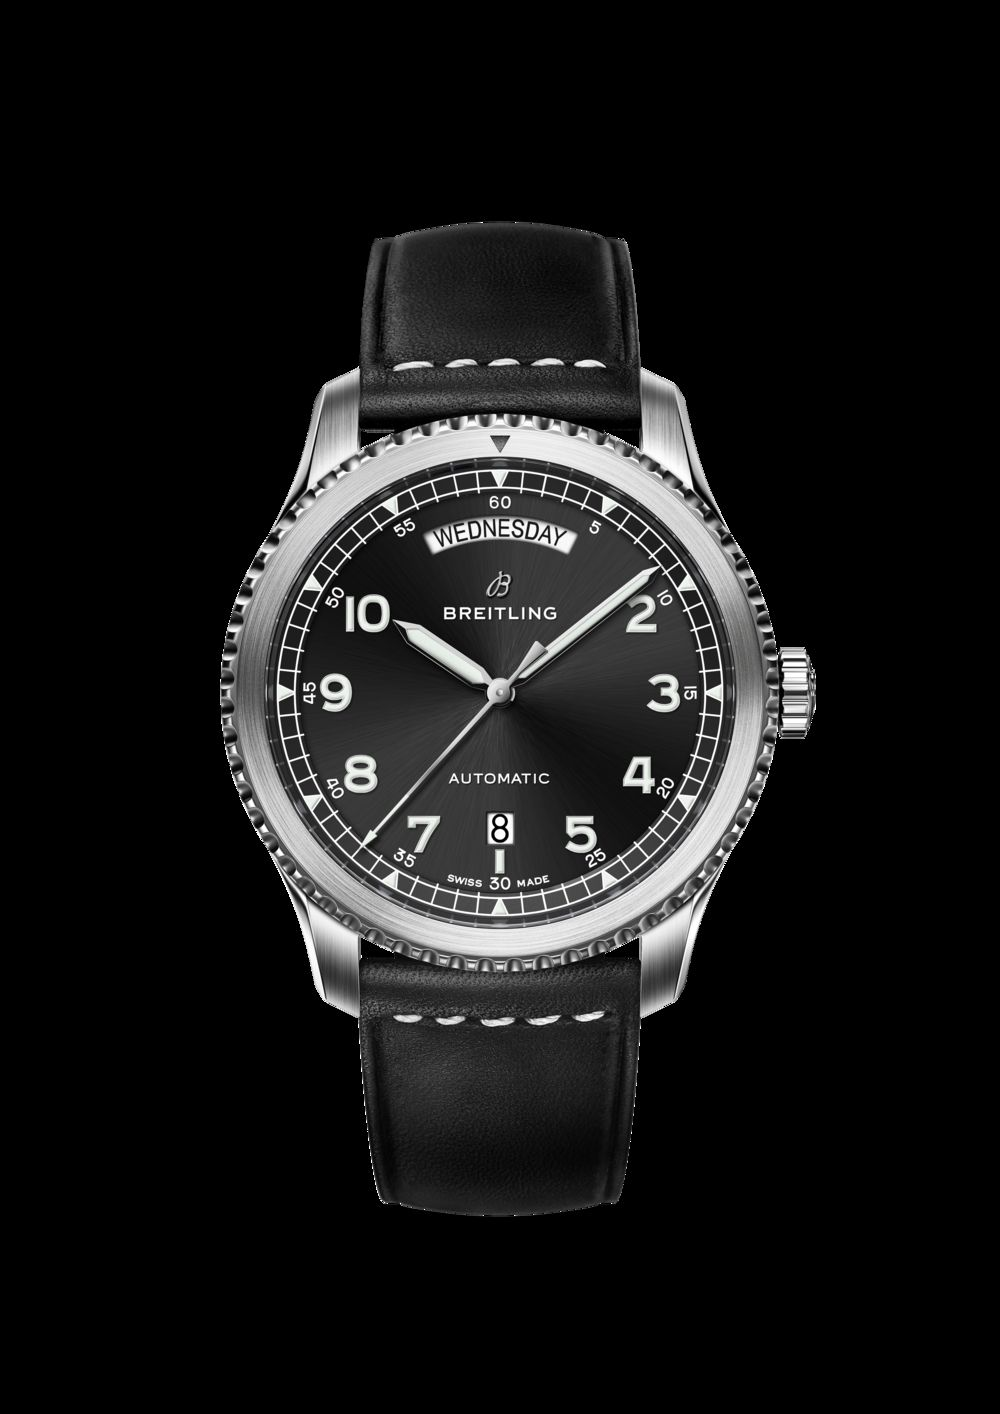 Breitling Navitimer 8 Automatic Day Date watch.